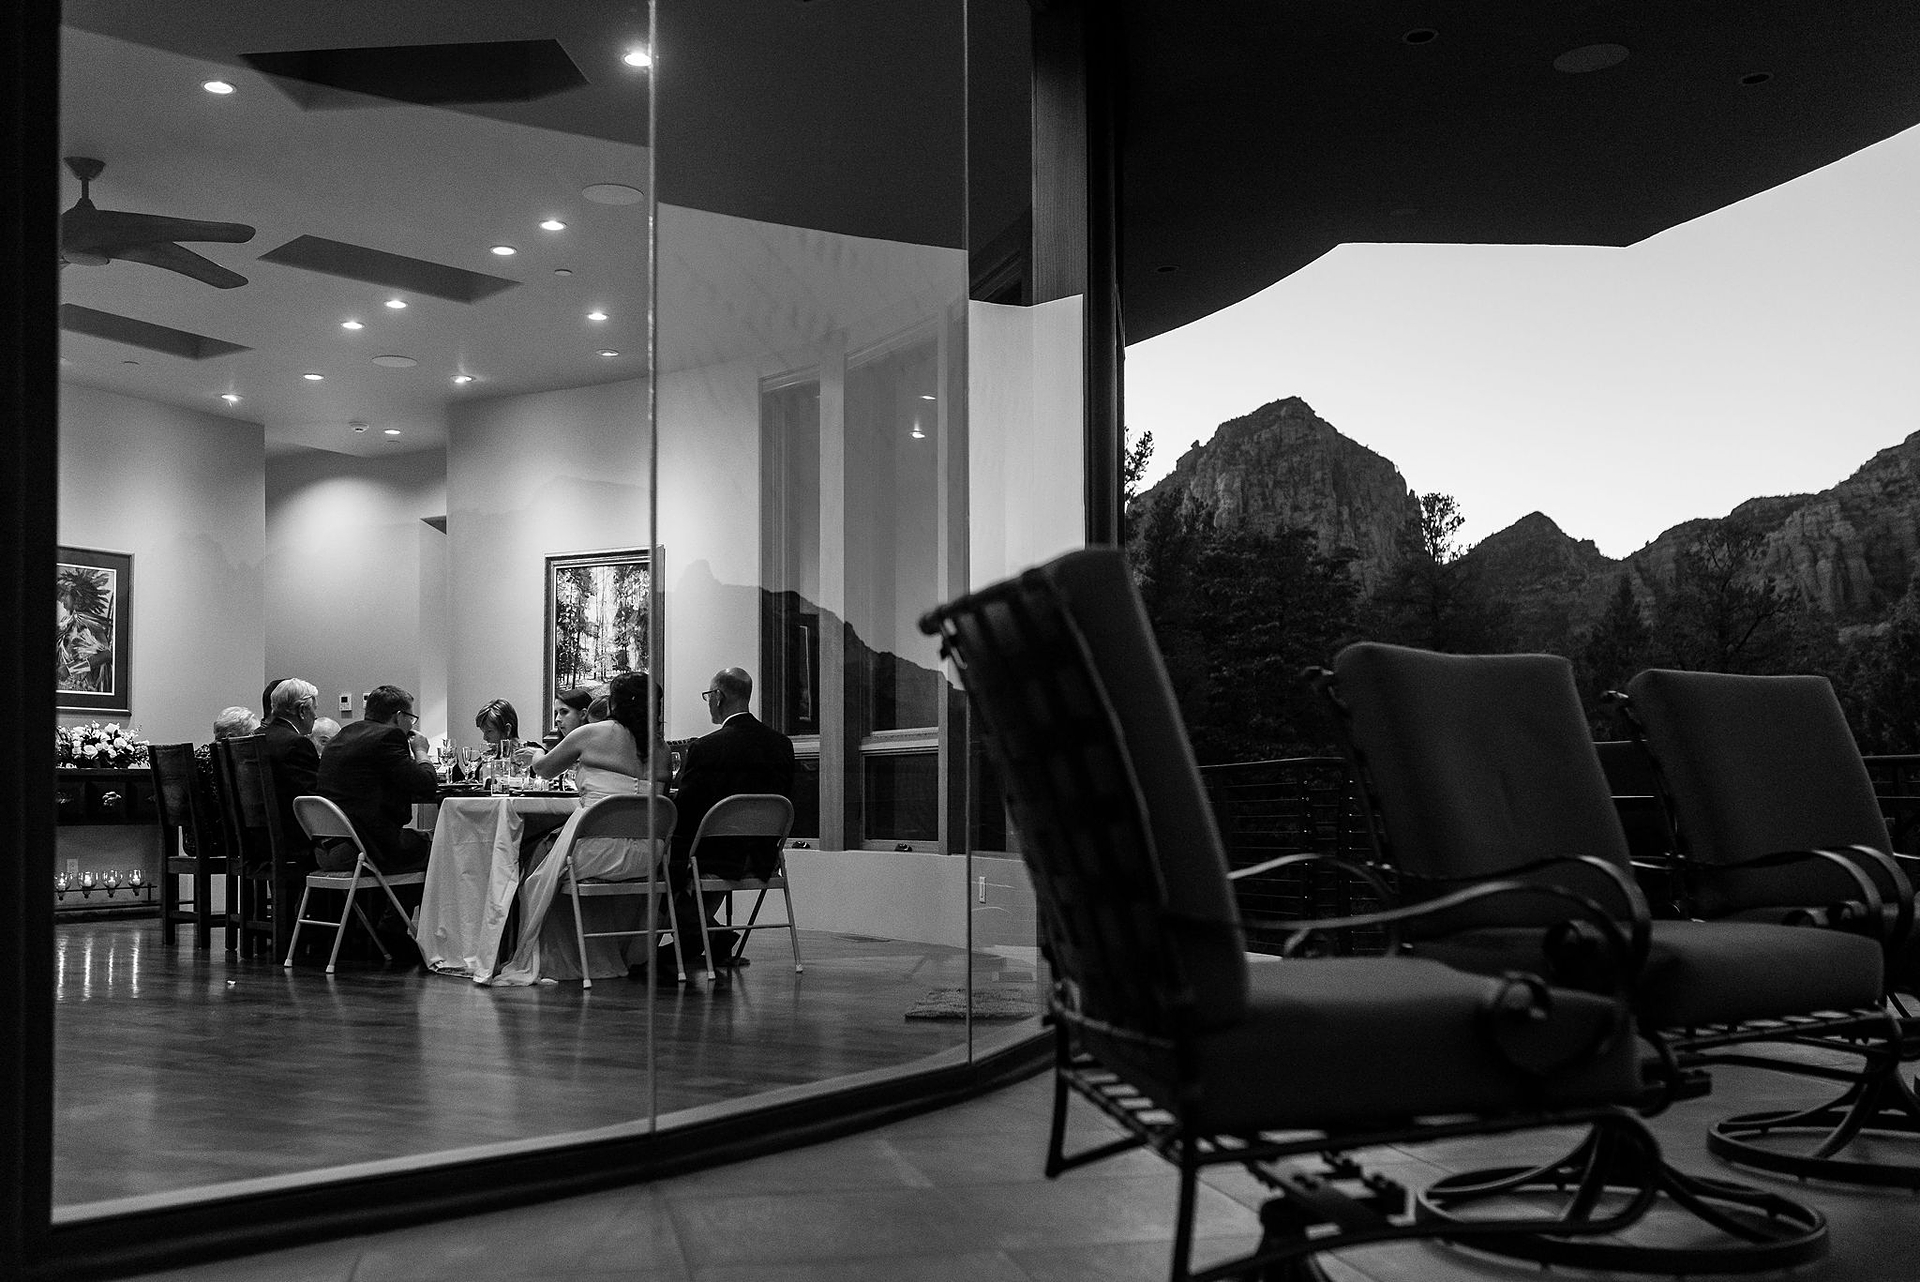 Sedona, Arizona Private Home Wedding Image in BW |  The family enjoys an intimate dinner together